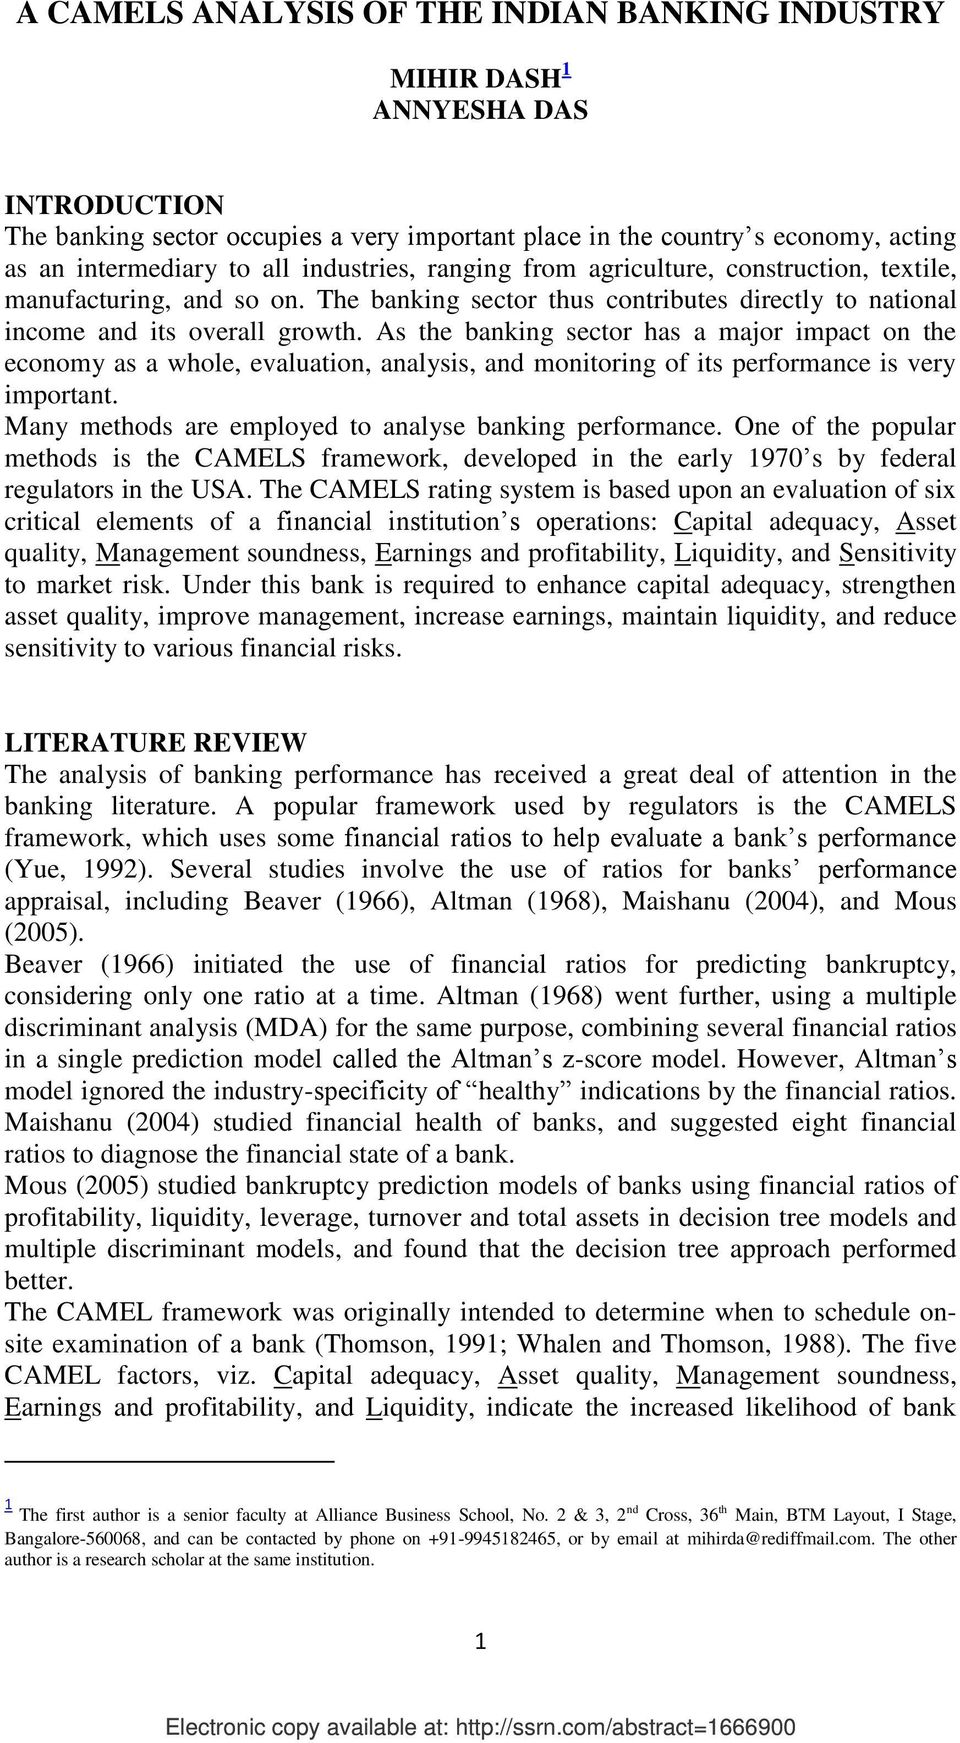 review of literature on liquidity ratios